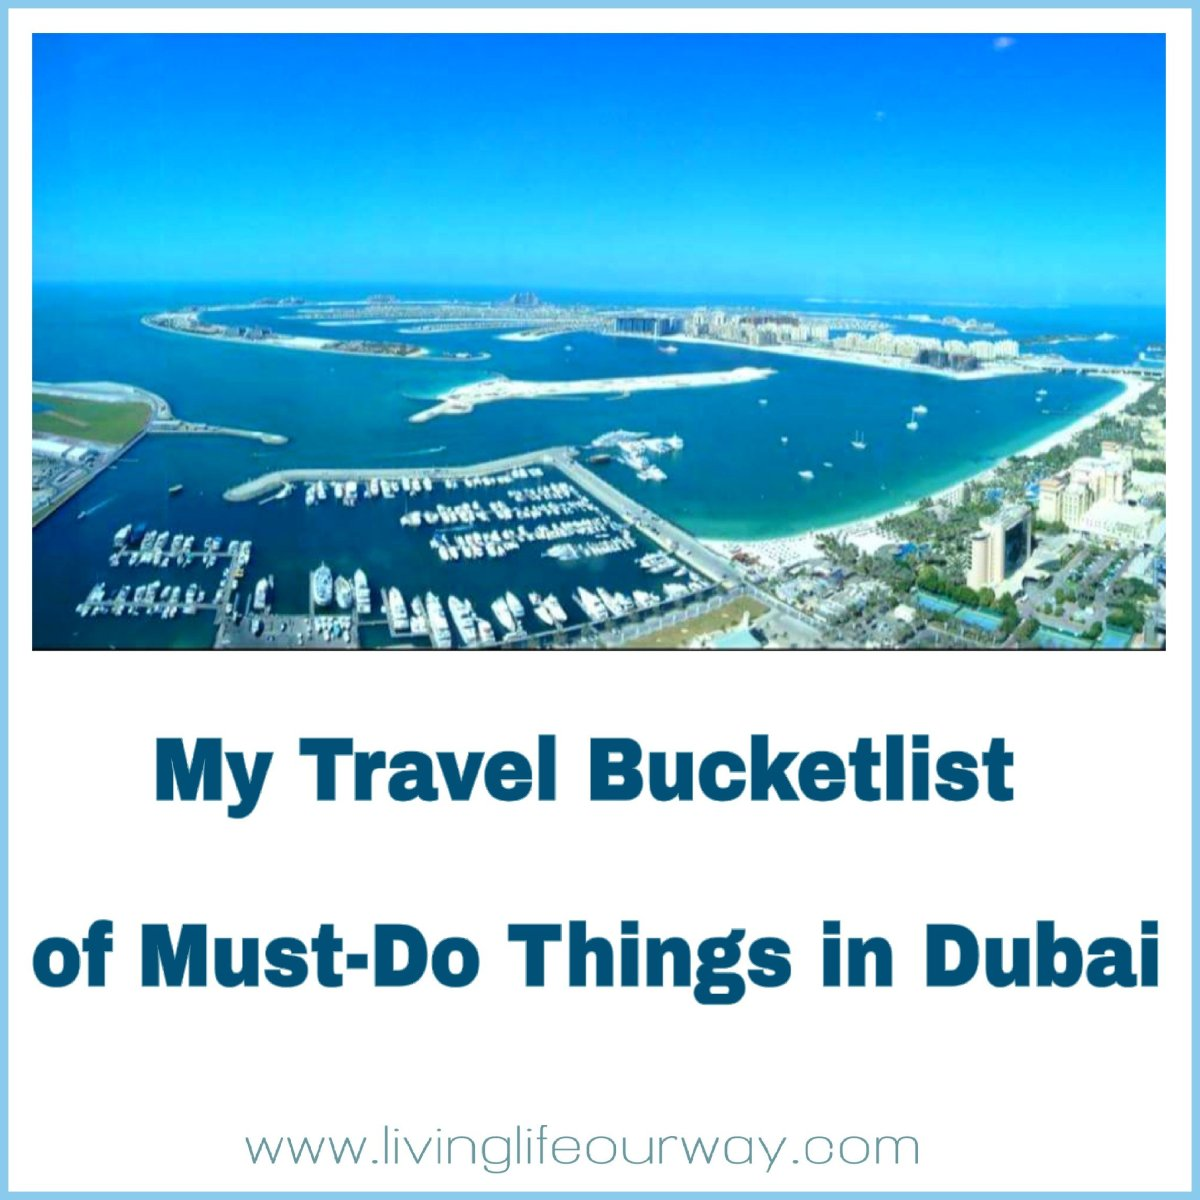 Dubai: My Ever Increasing Travel Bucketlist